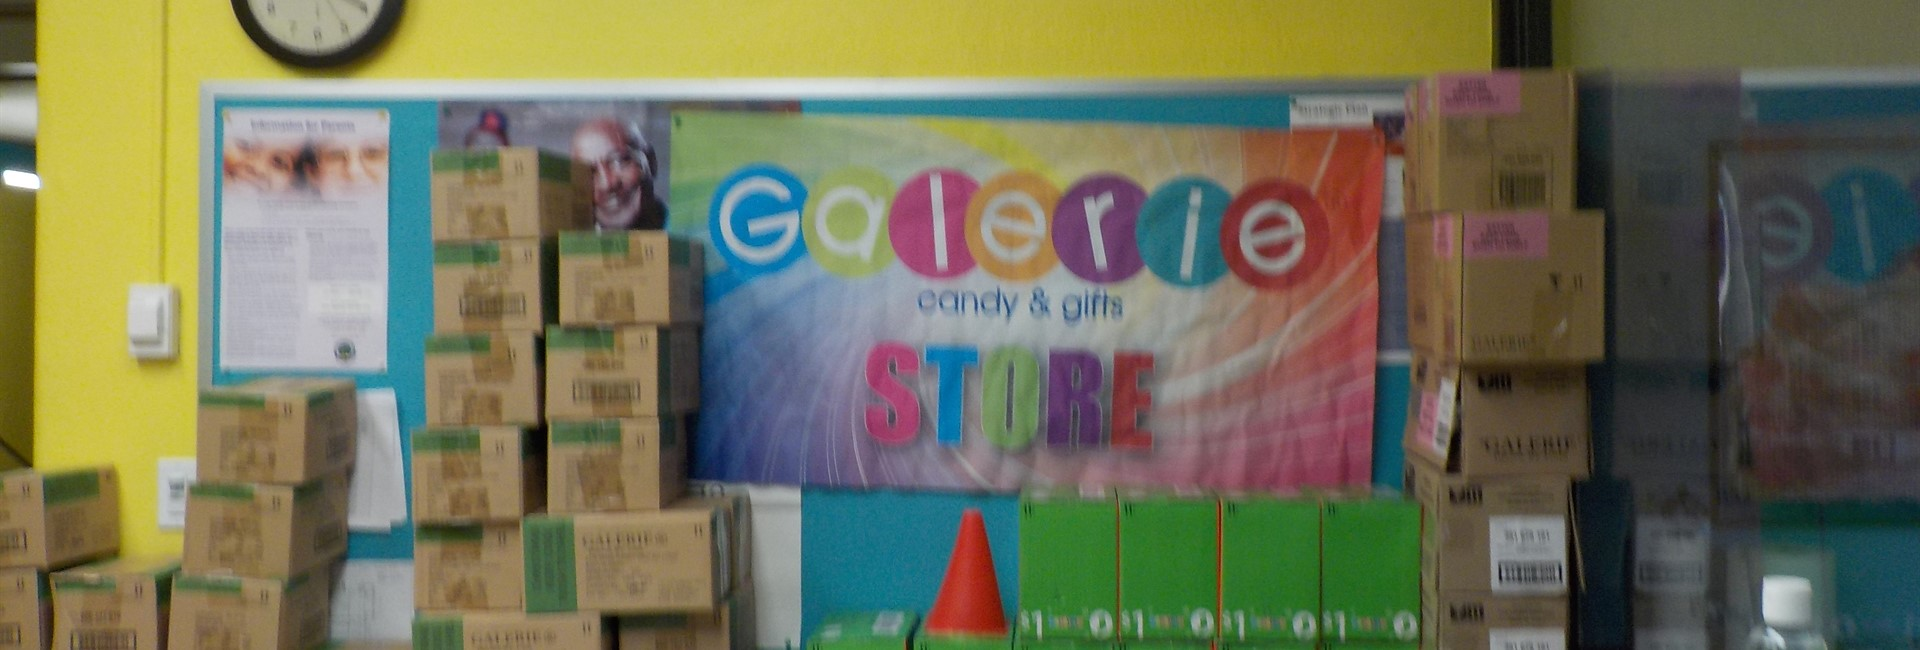 Galerie gifts for students